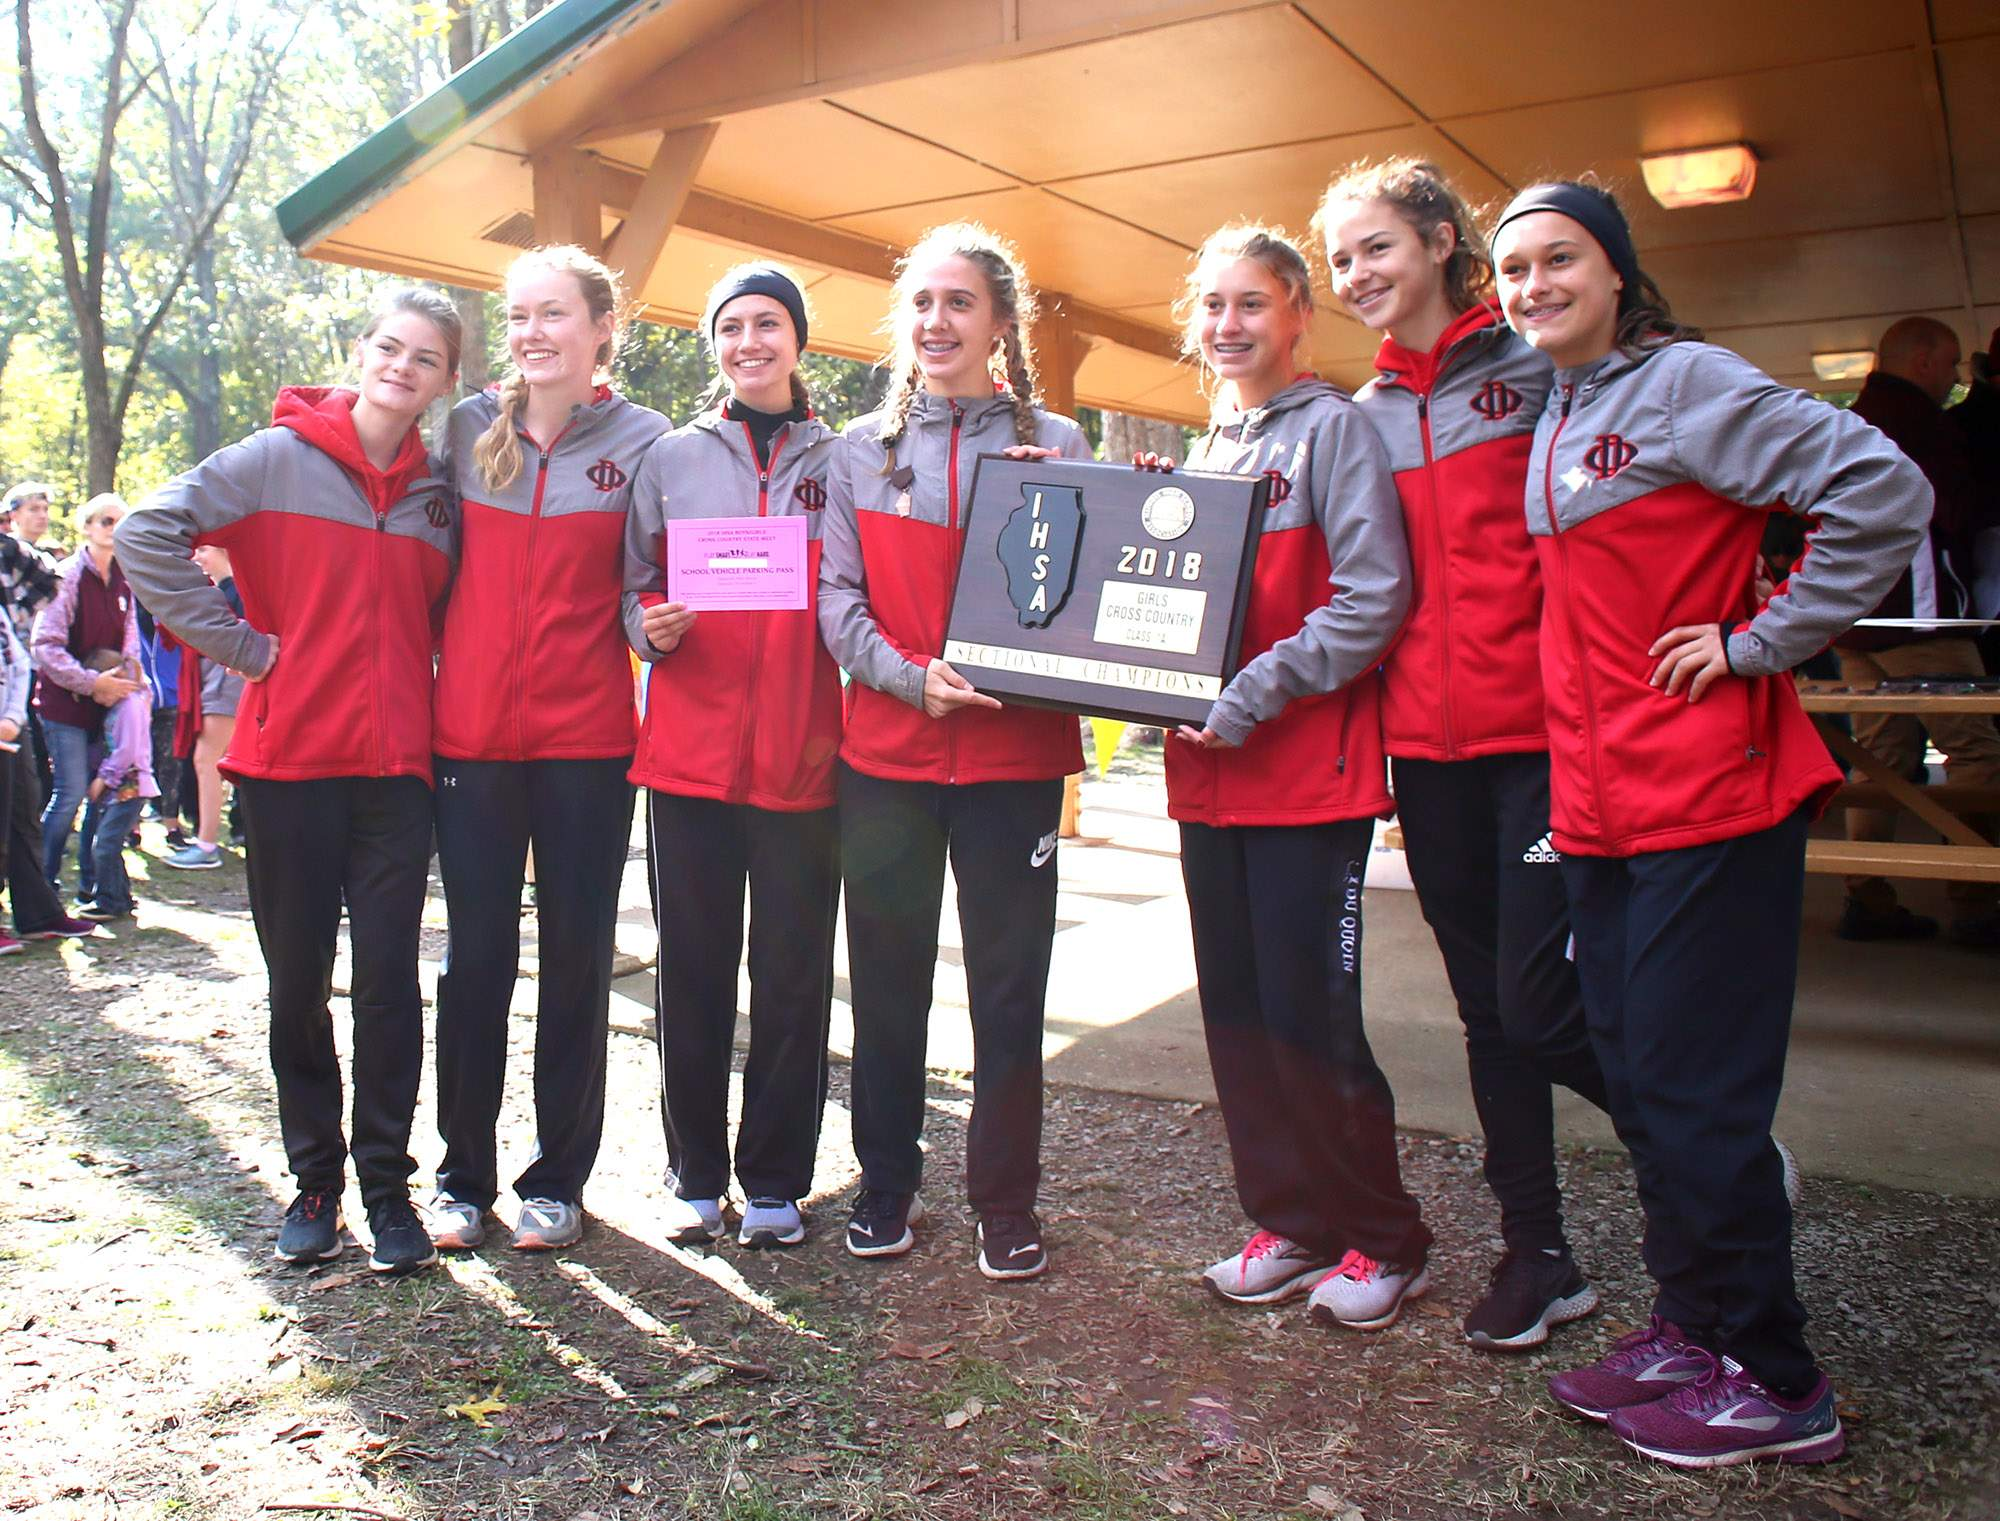 The Du Quoin High School girls cross country team accepts the Benton 1A Sectional championship plaque Saturday.